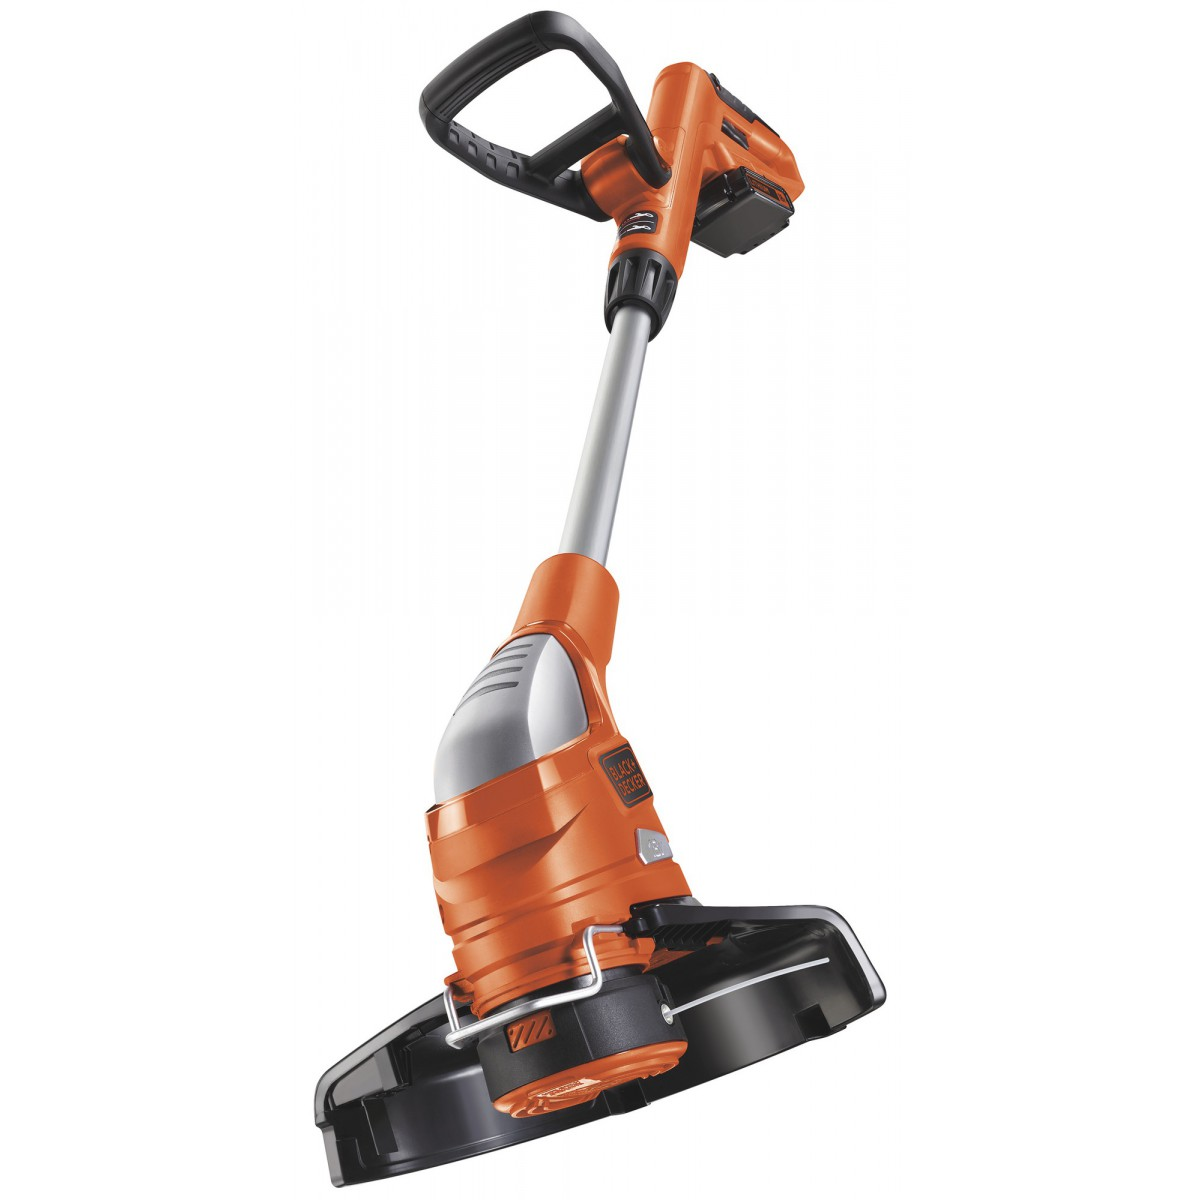 Coupe-bordures GLC1823L20 Black & Decker - Sans fil - 18 V